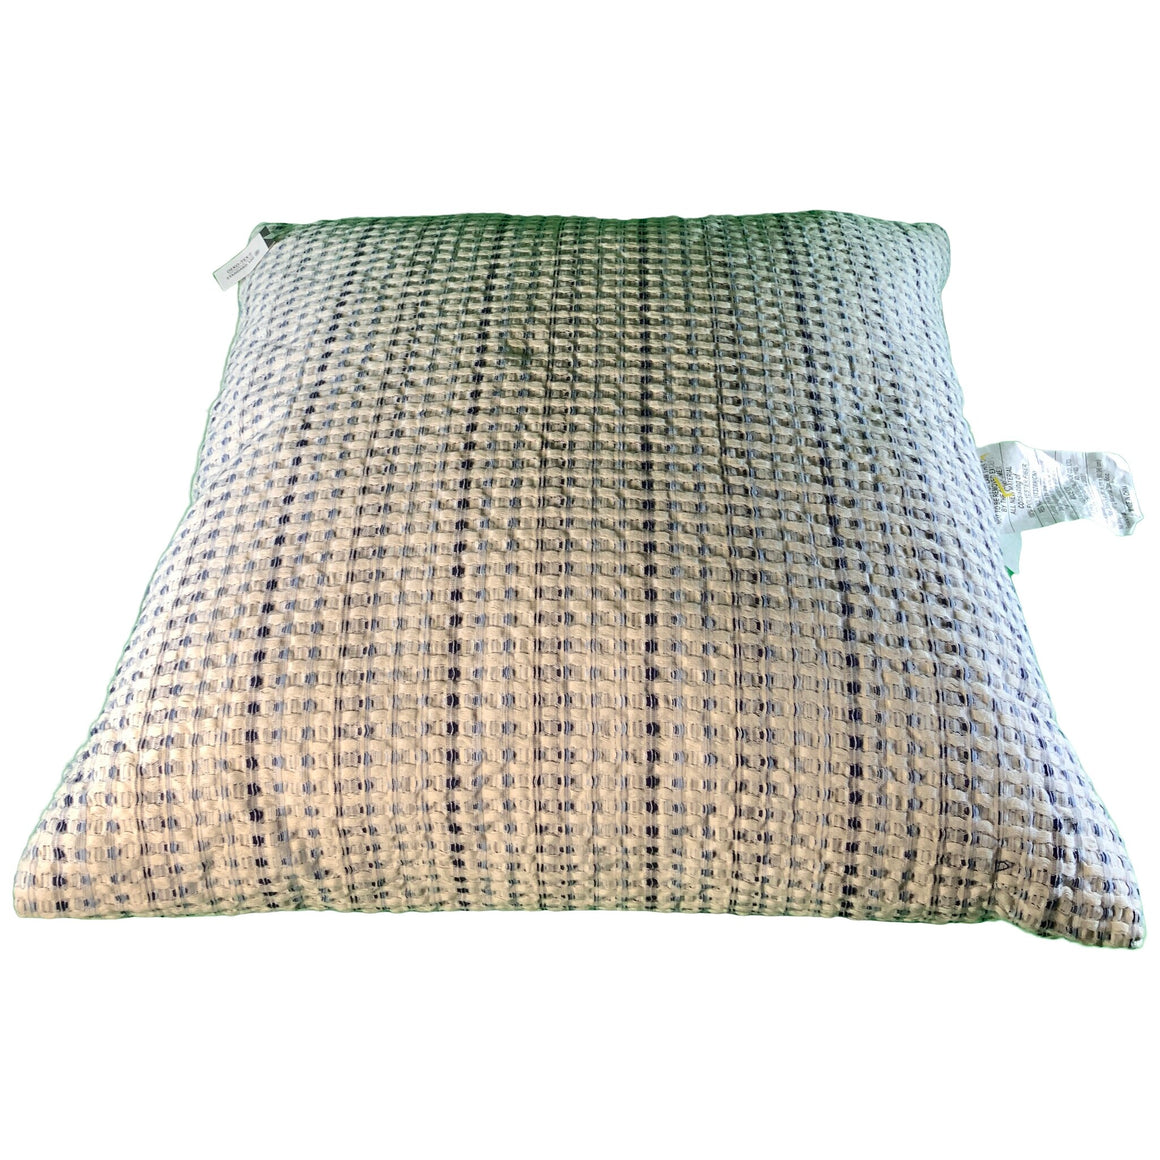 Oversize Square Washed Waffle Throw Pillow - Threshold™